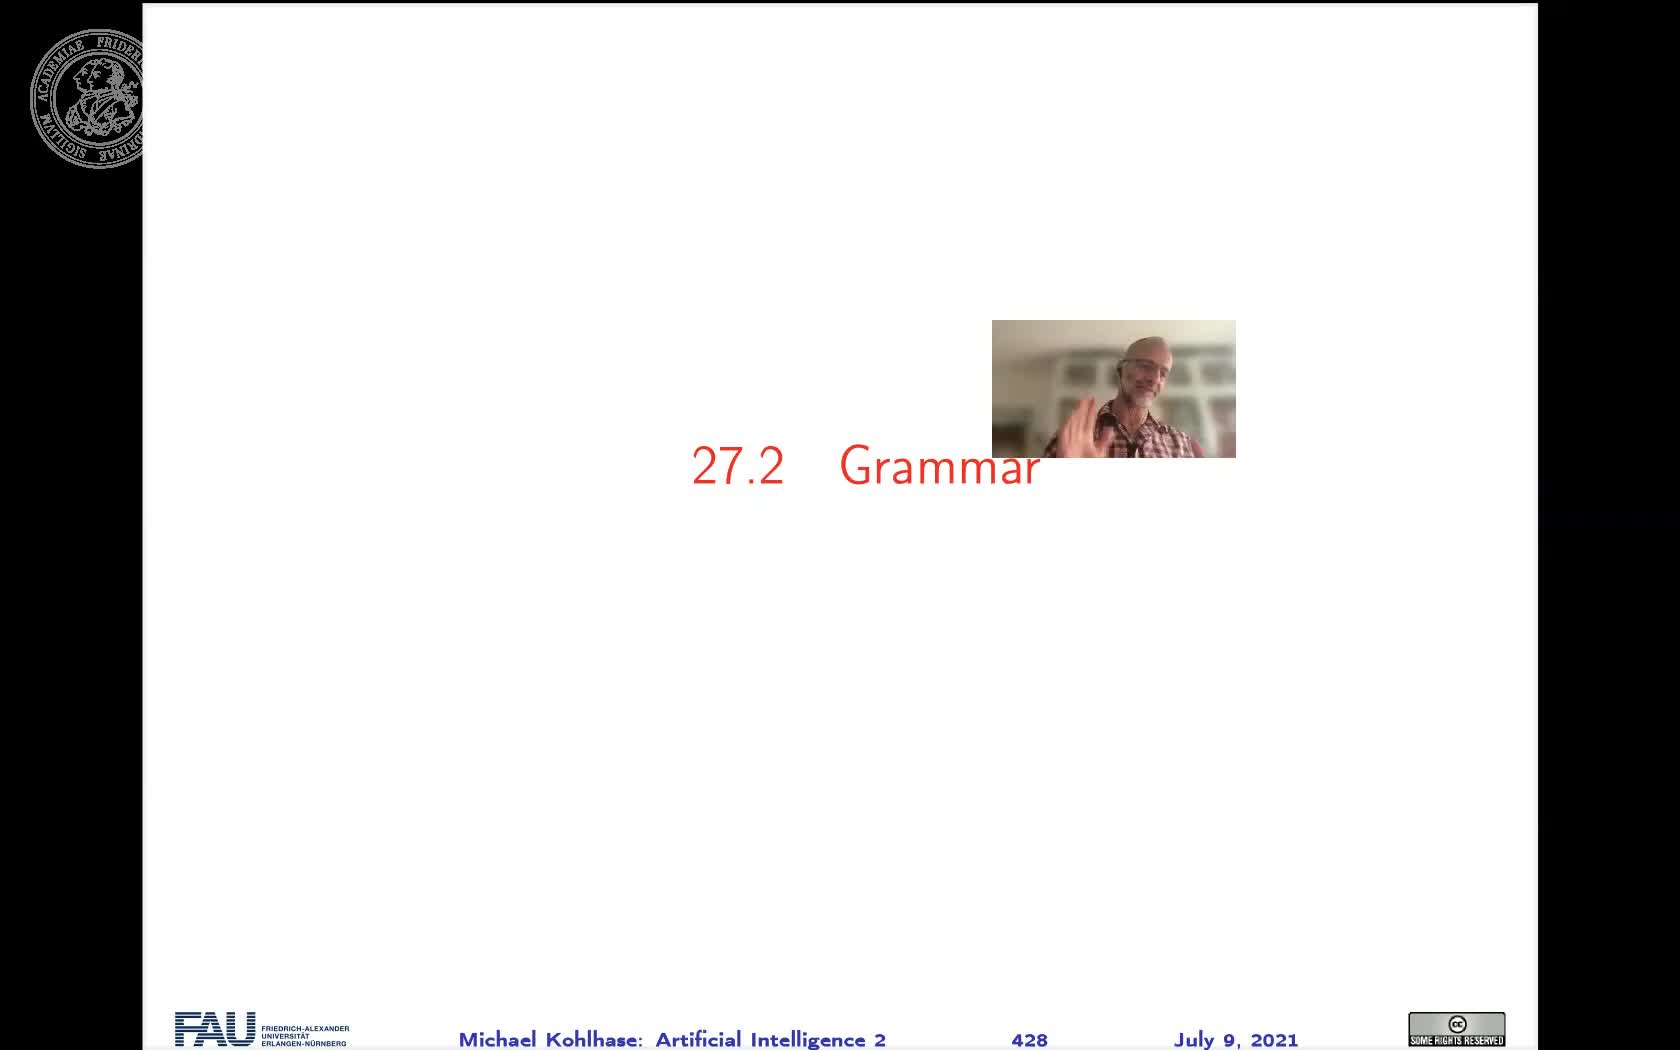 30.2 Grammars and Syntactic Processing preview image